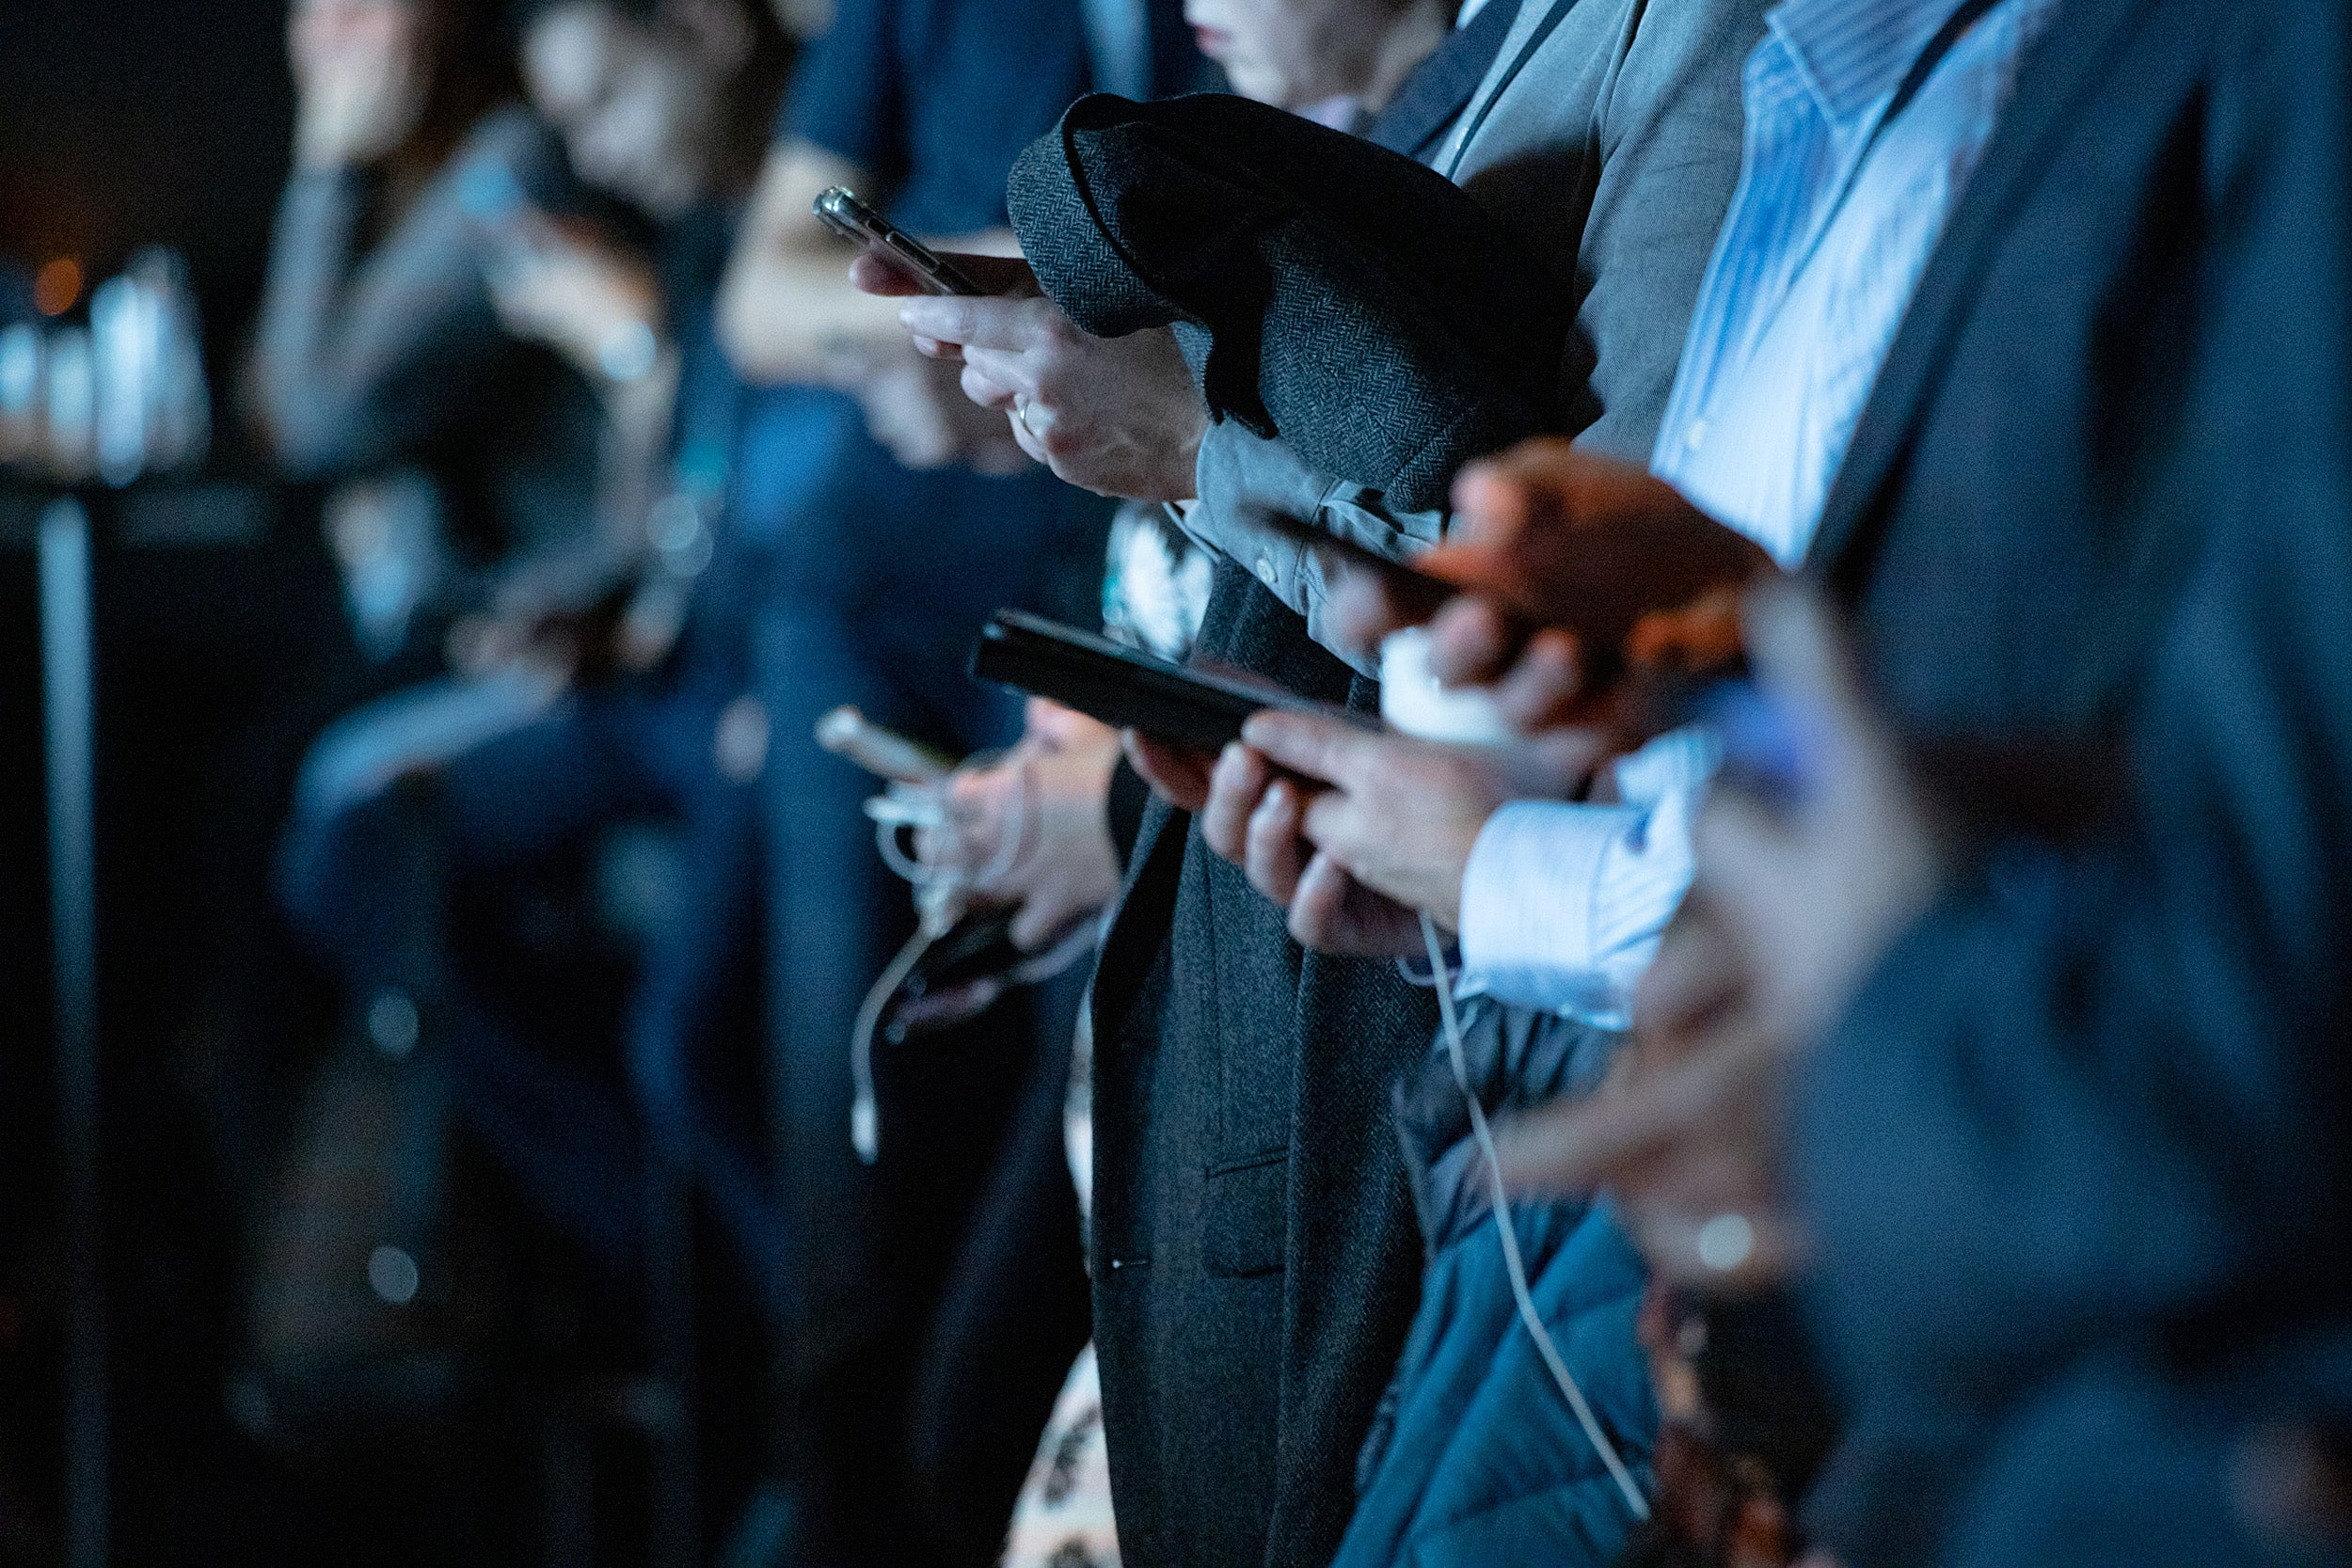 Crowd of people using cellphones.